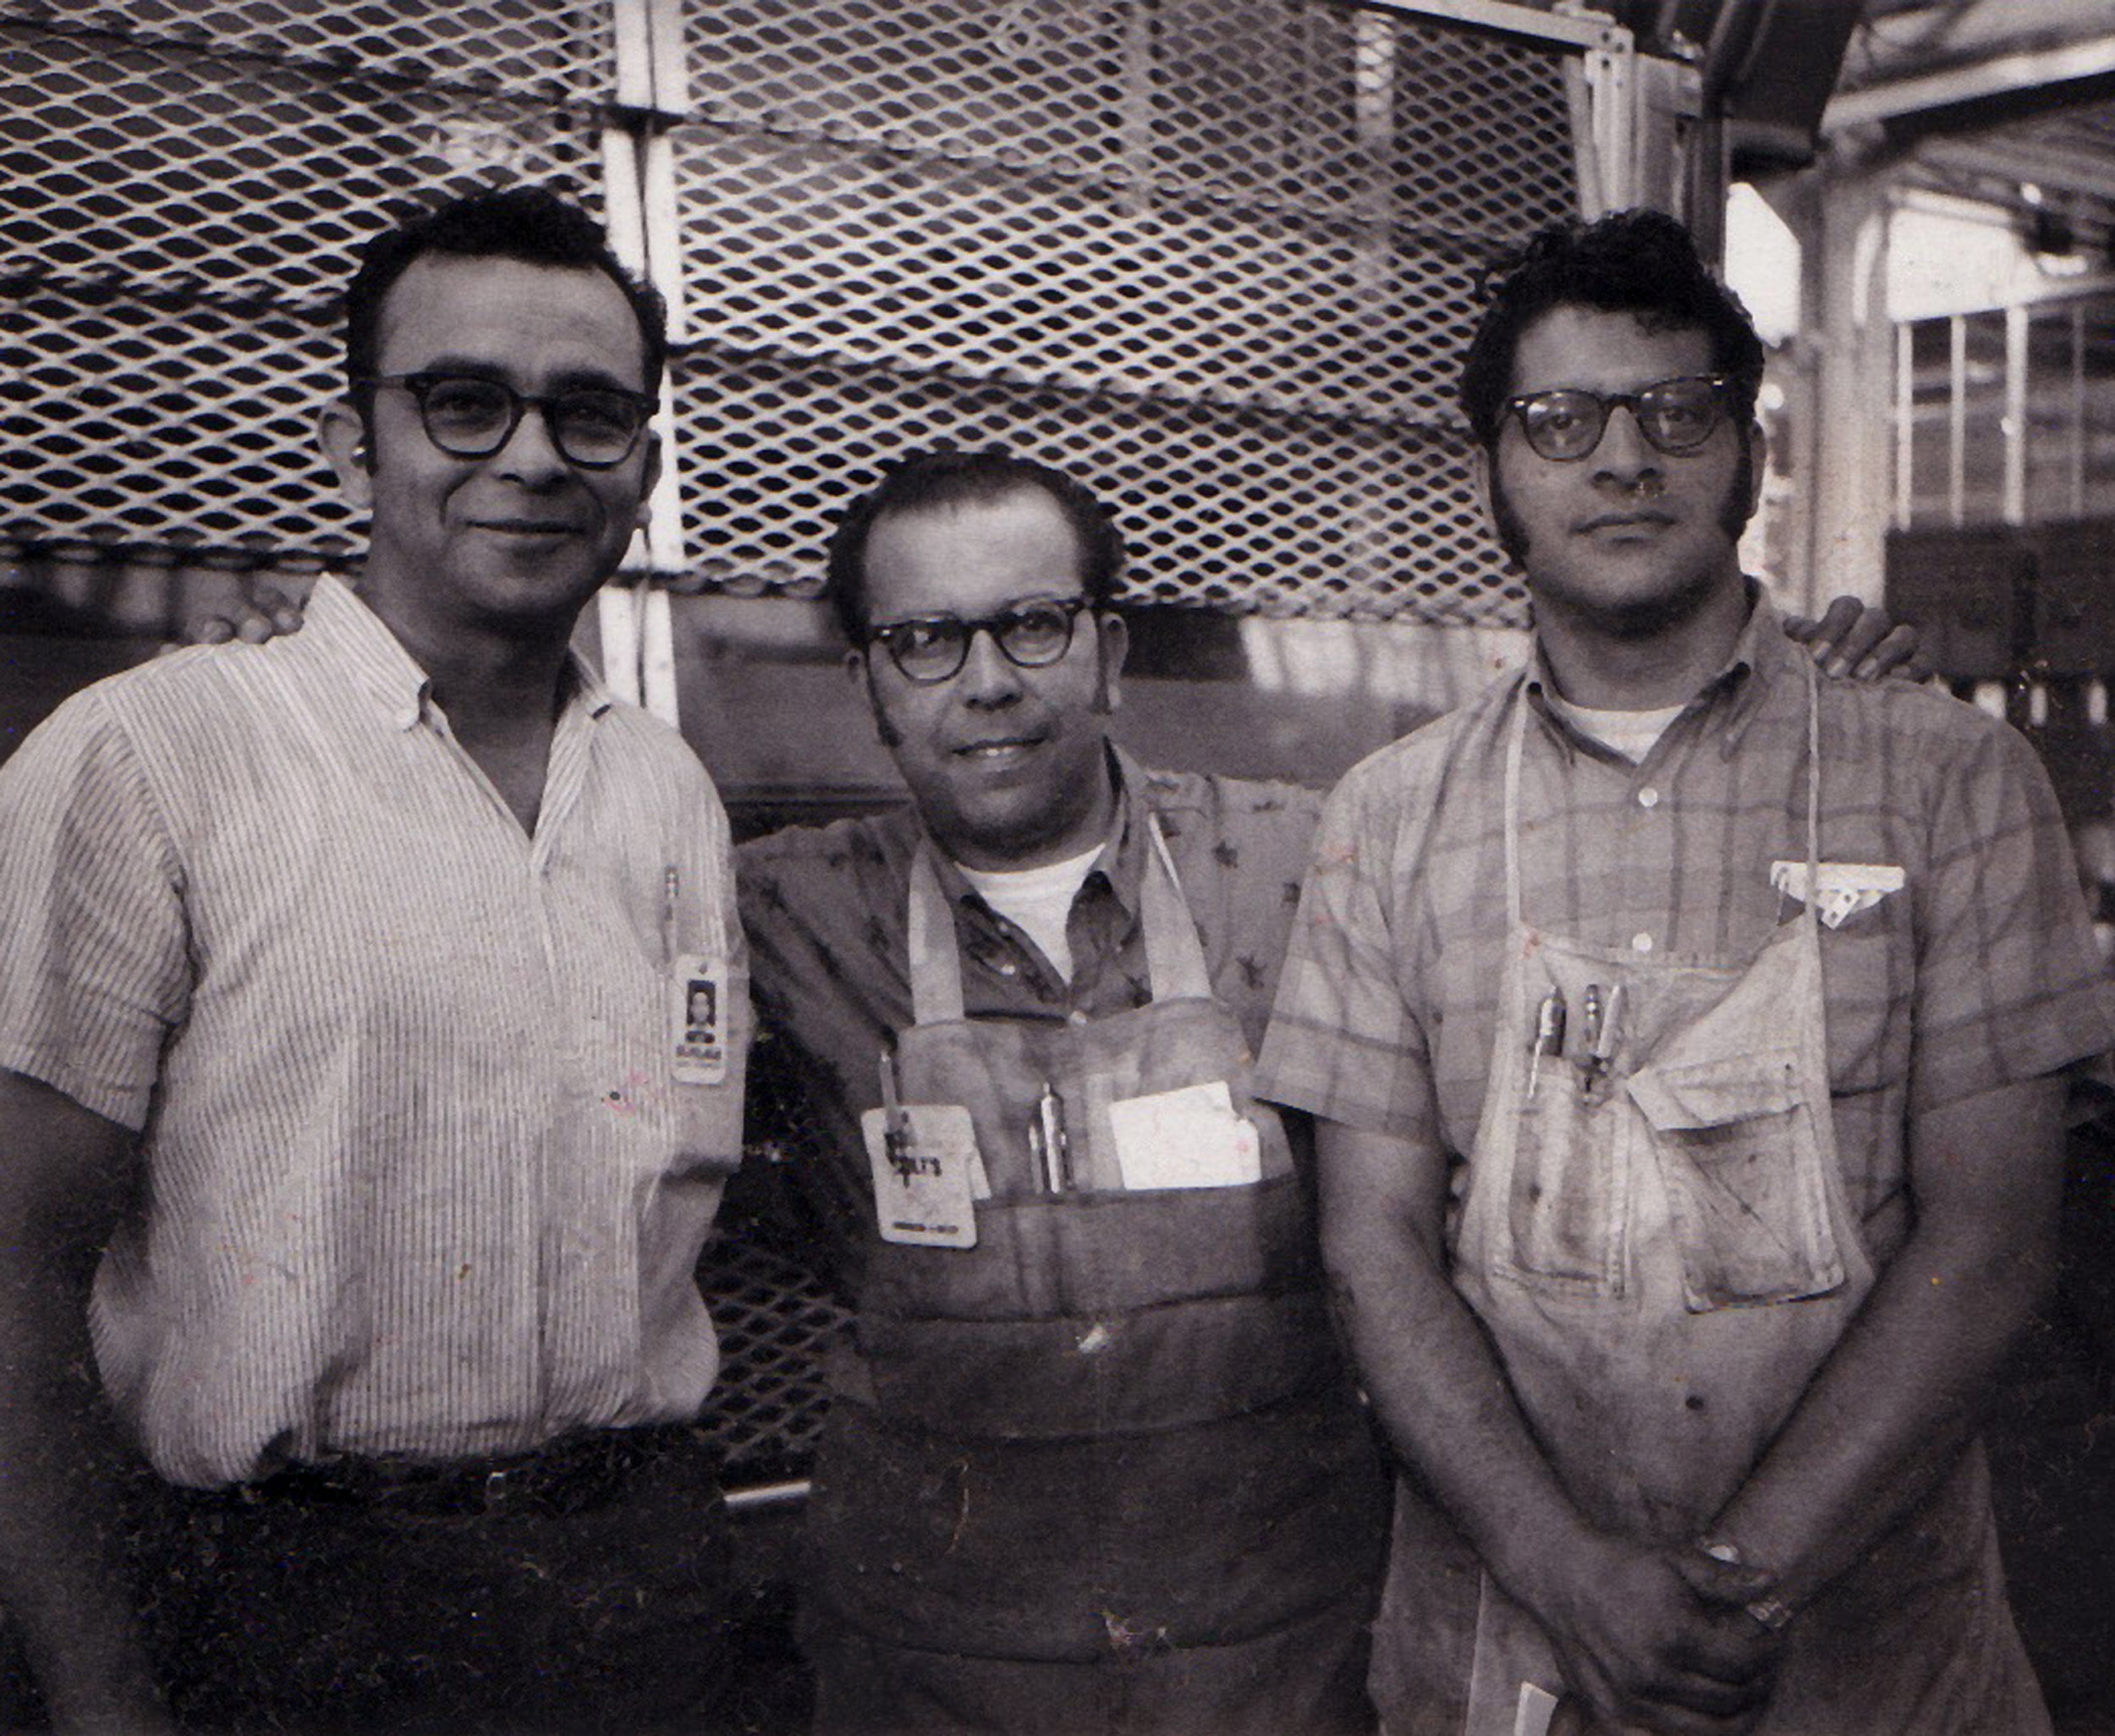 1969circa-Raul and Machinist Coworkers at shop_bigger.jpg